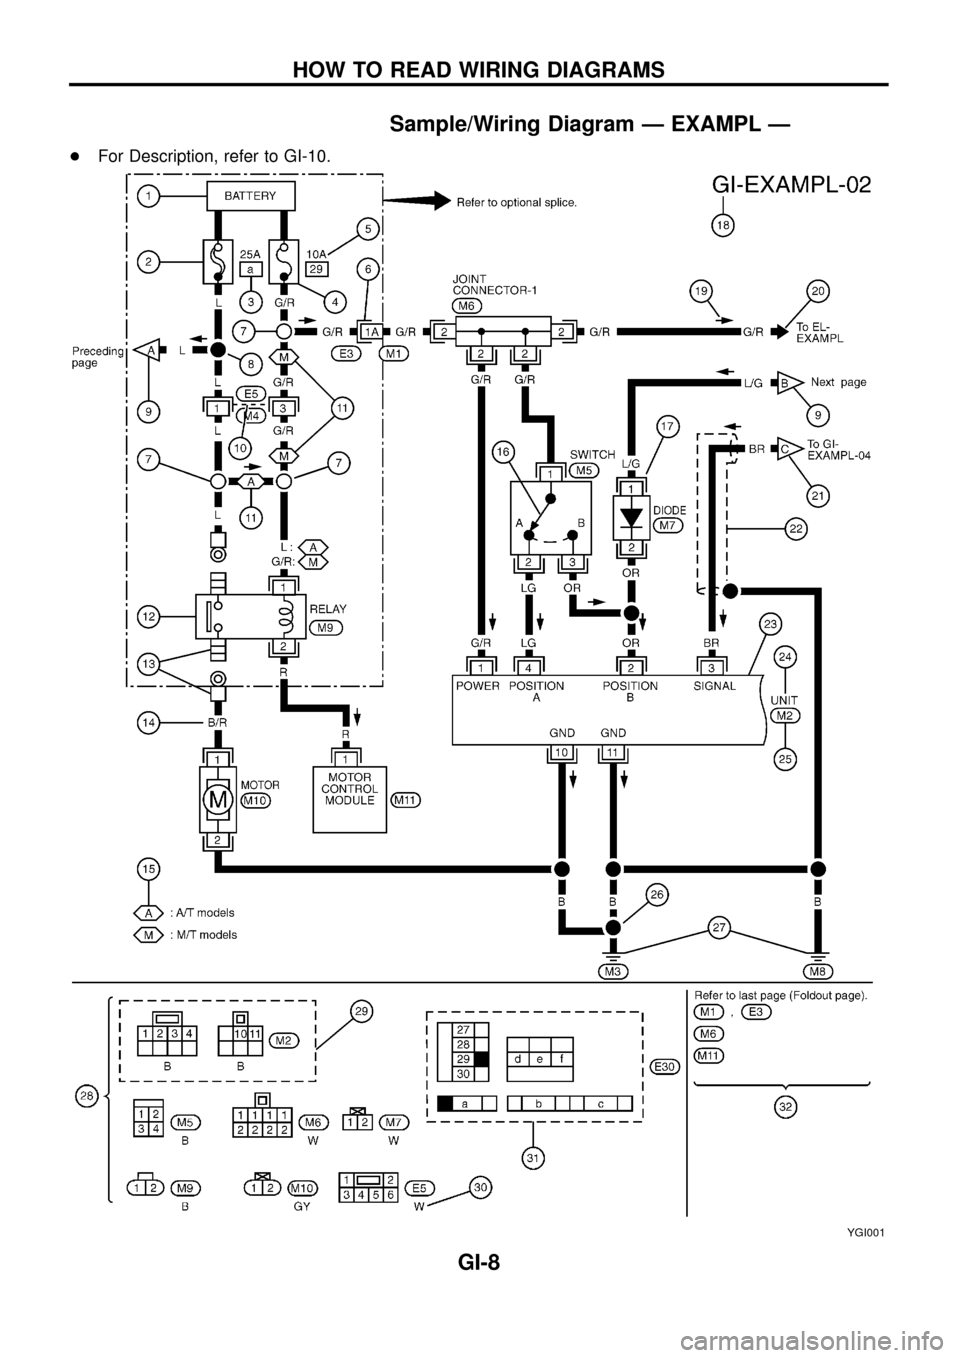 w960_621 8 nissan patrol wiring diagram nissan patrol wiring diagram at webbmarketing.co